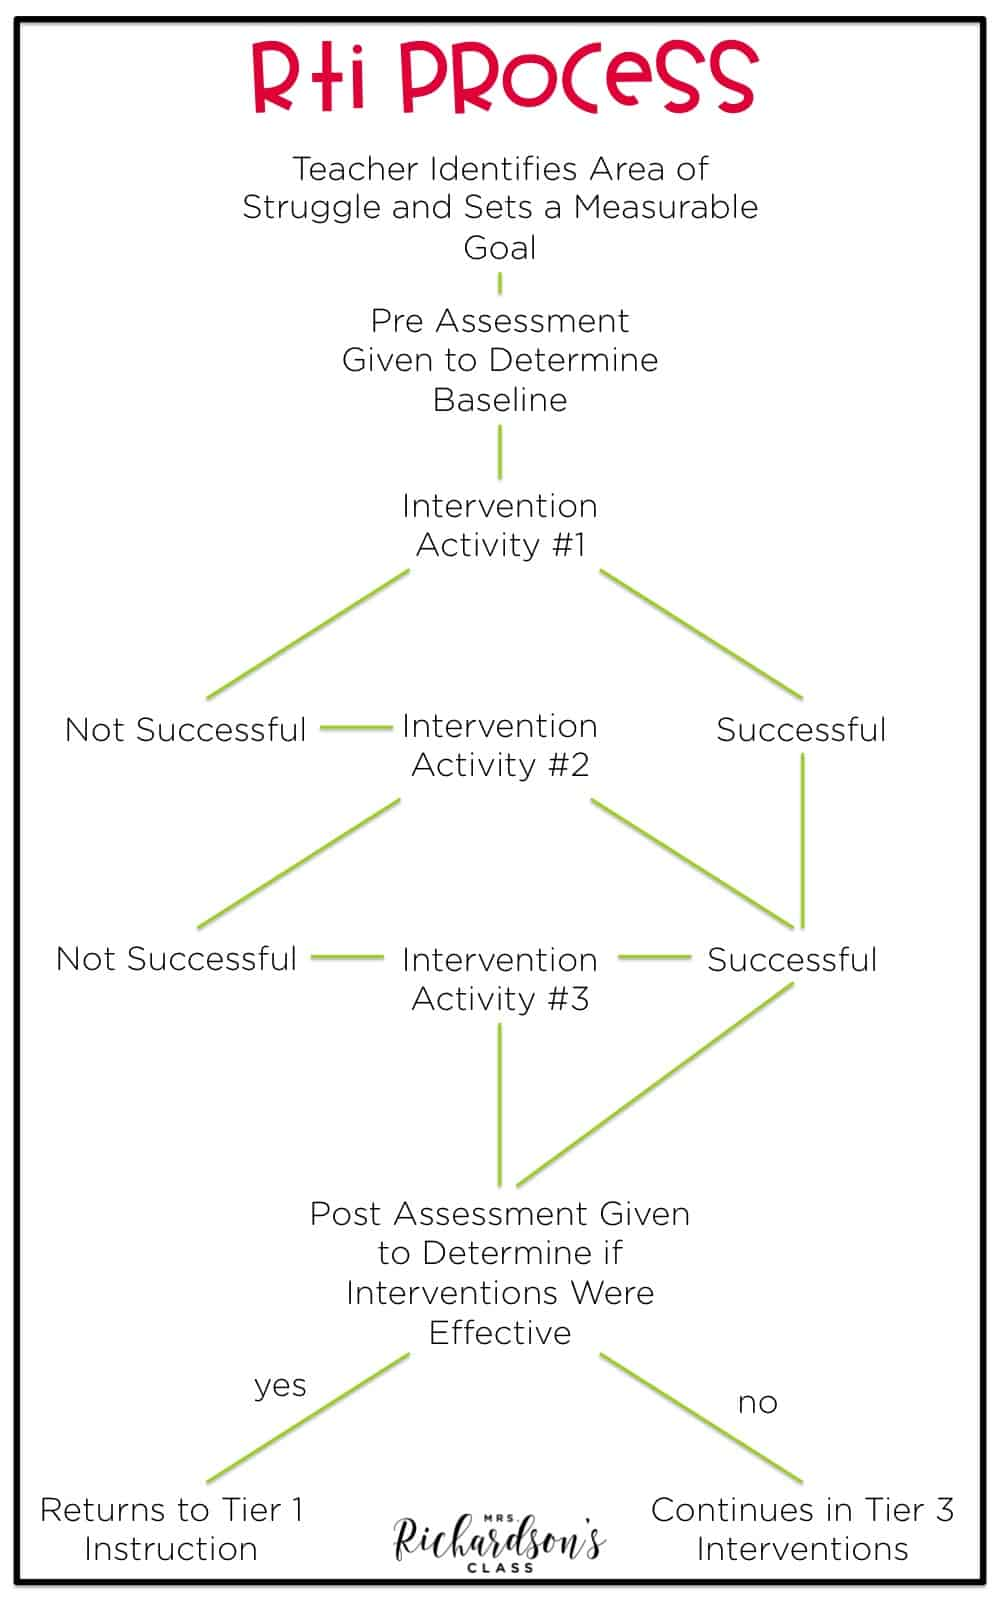 Understanding the RTI process can be difficult. This image shows how it worked in my classroom at my school. This RTI process and flow chart makes it simple for teachers to understand.